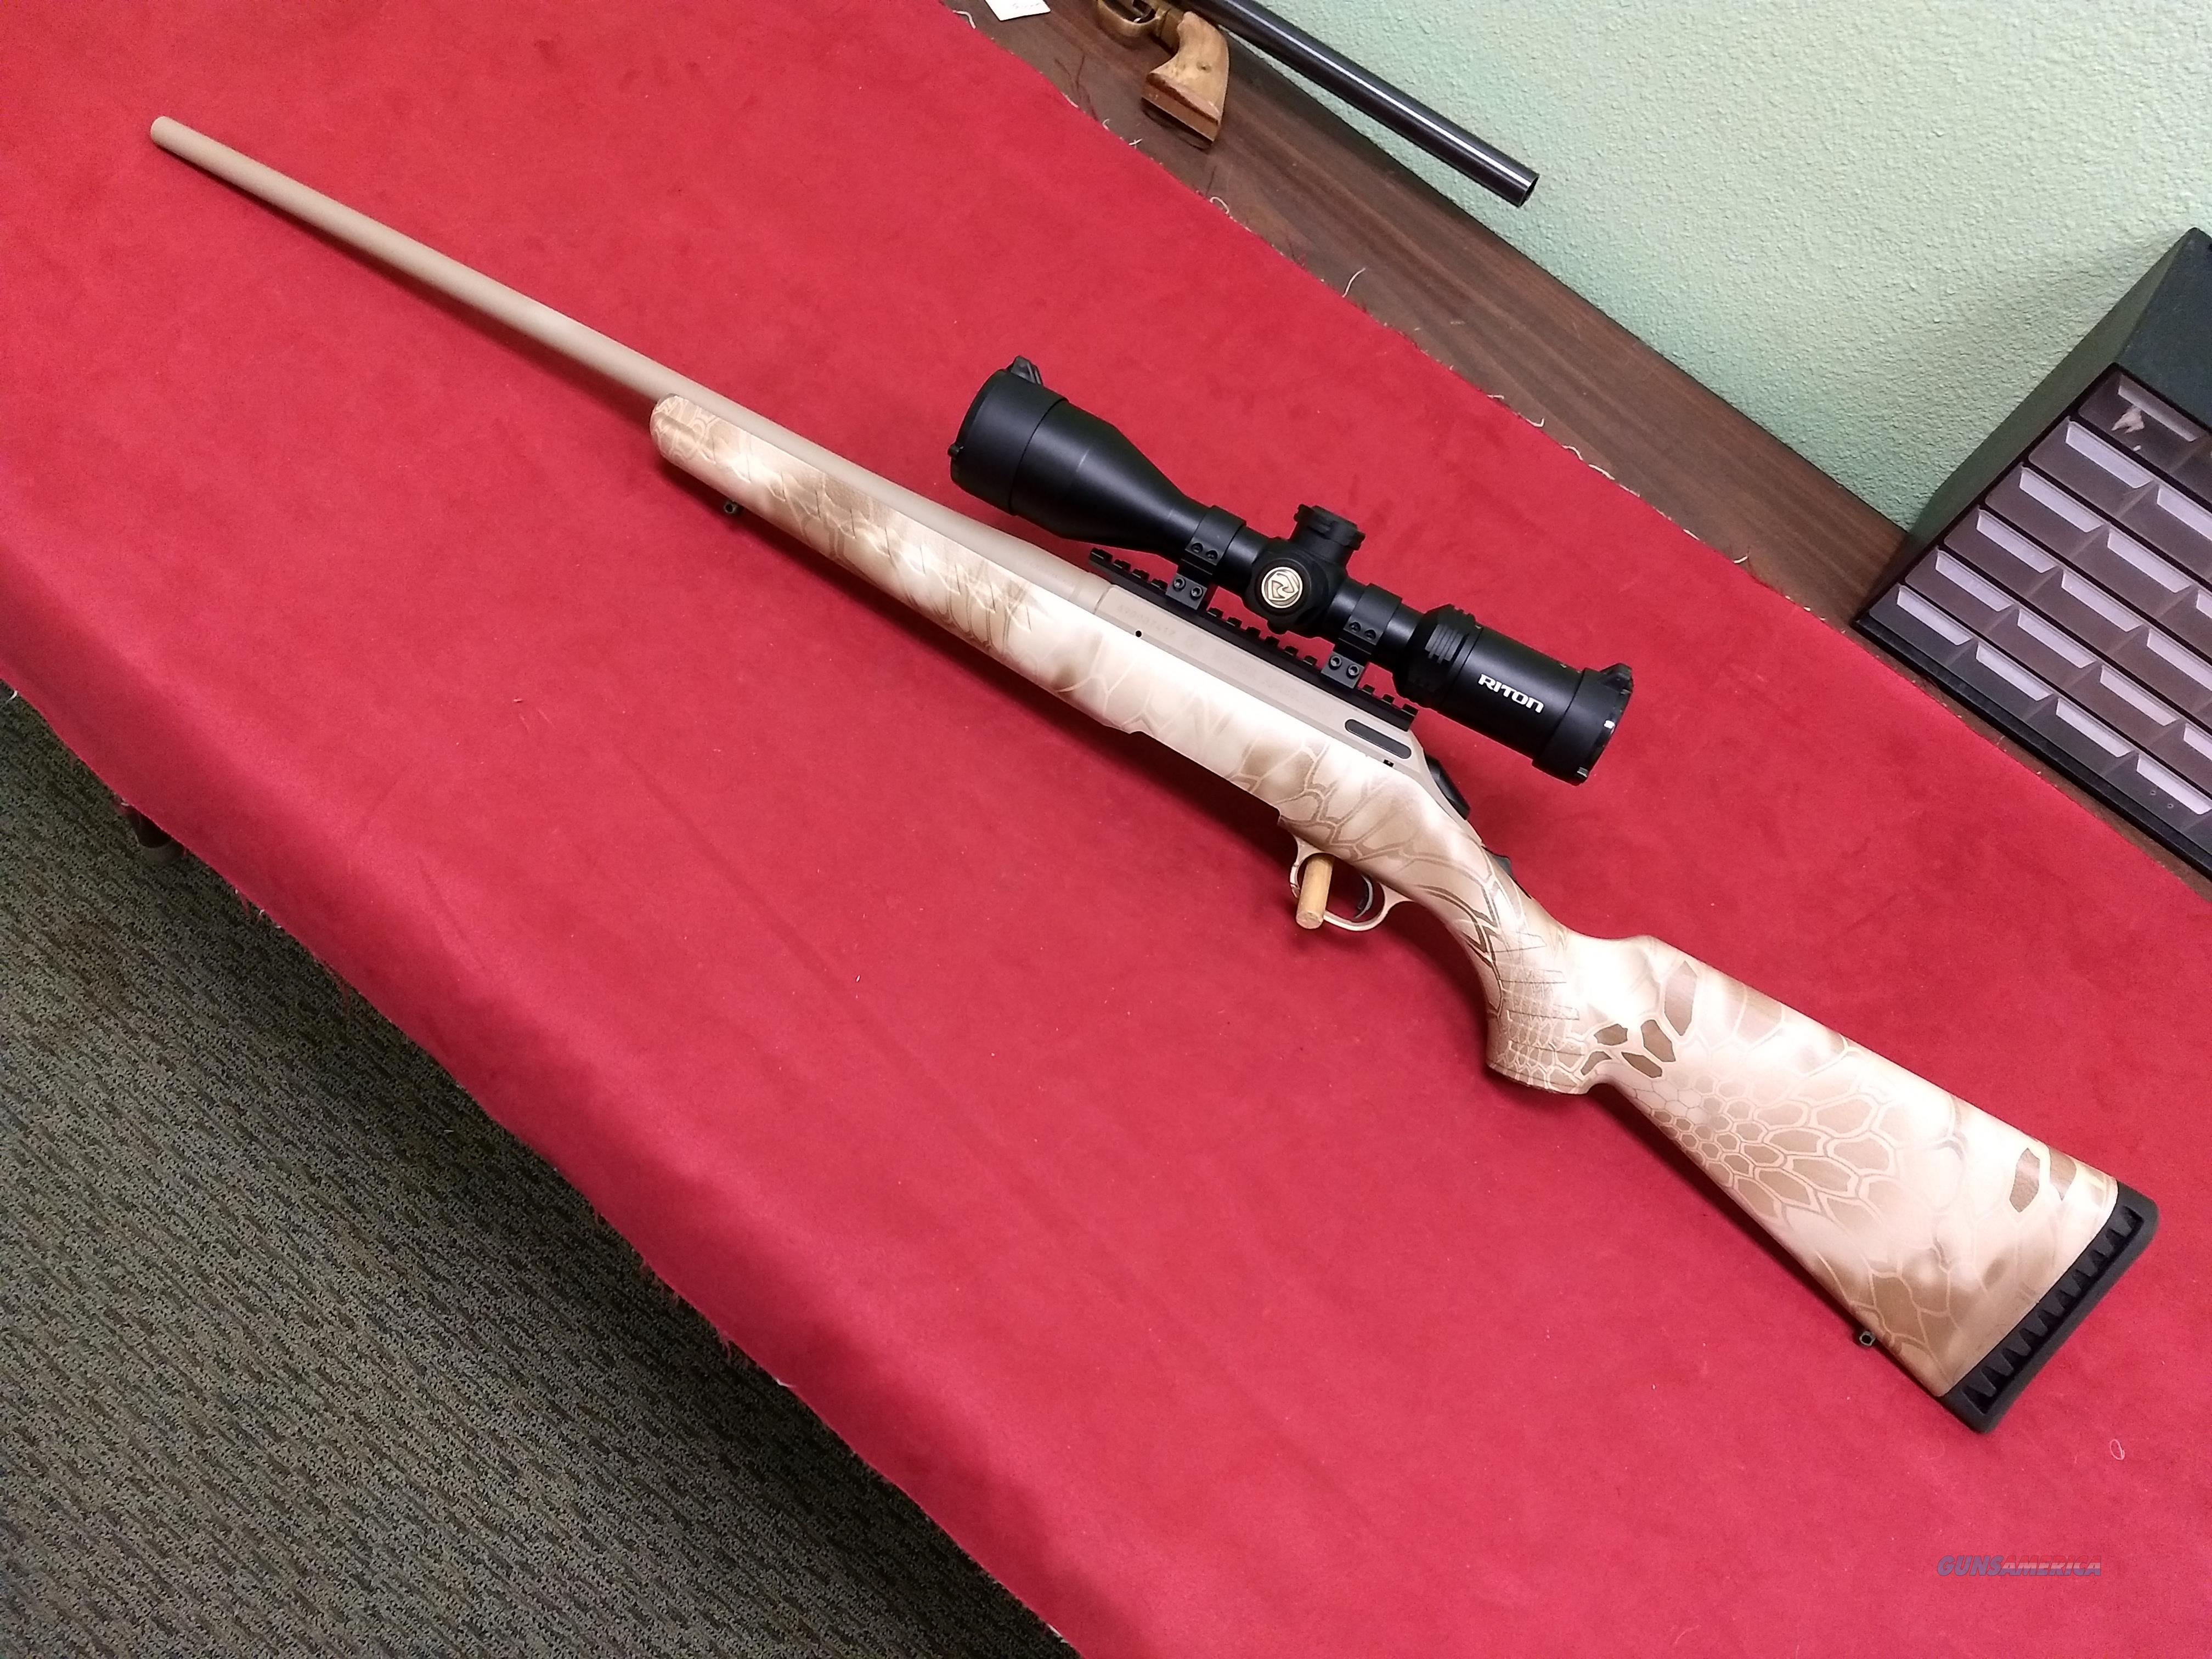 Ruger American rifle in 6.5 Creedmoor w/ Riton 4-16x50 scope  Guns > Rifles > Ruger Rifles > American Rifle